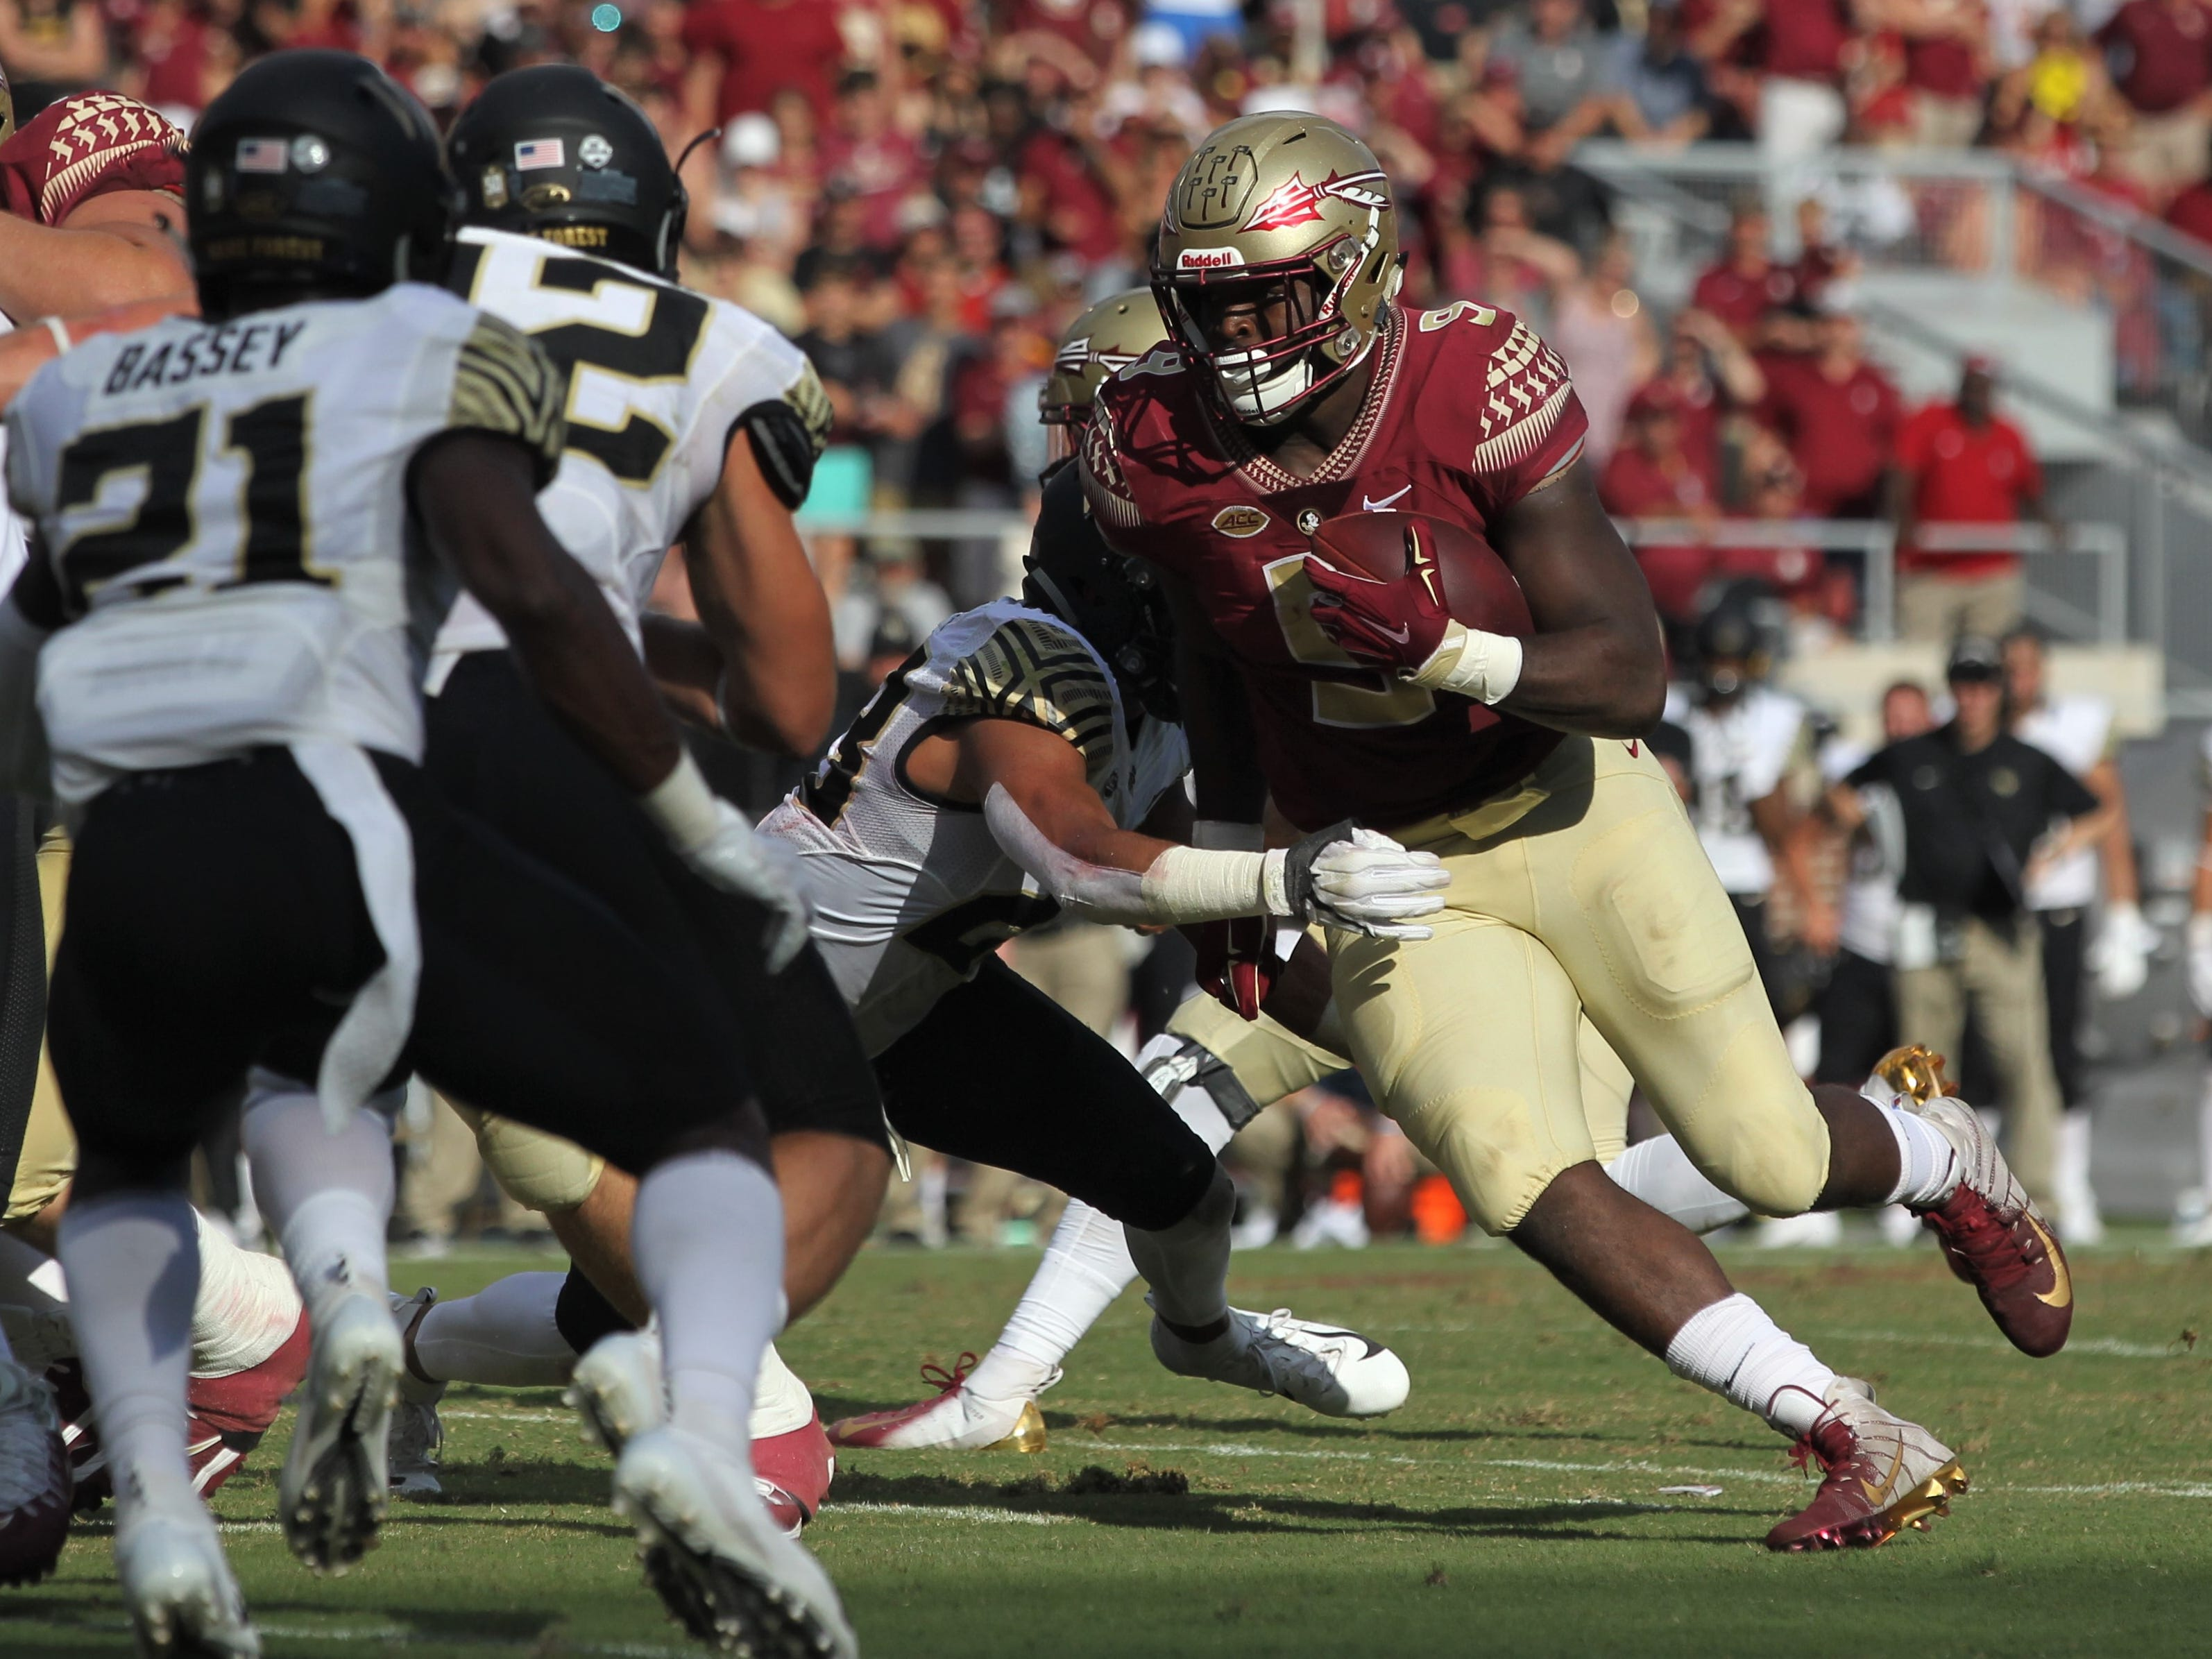 Florida State running back Jacques Patrick runs for a two-yard touchdown in the second quarter of a game against Wake Forest at Doak Campbell Stadium on Oct. 20, 2018.